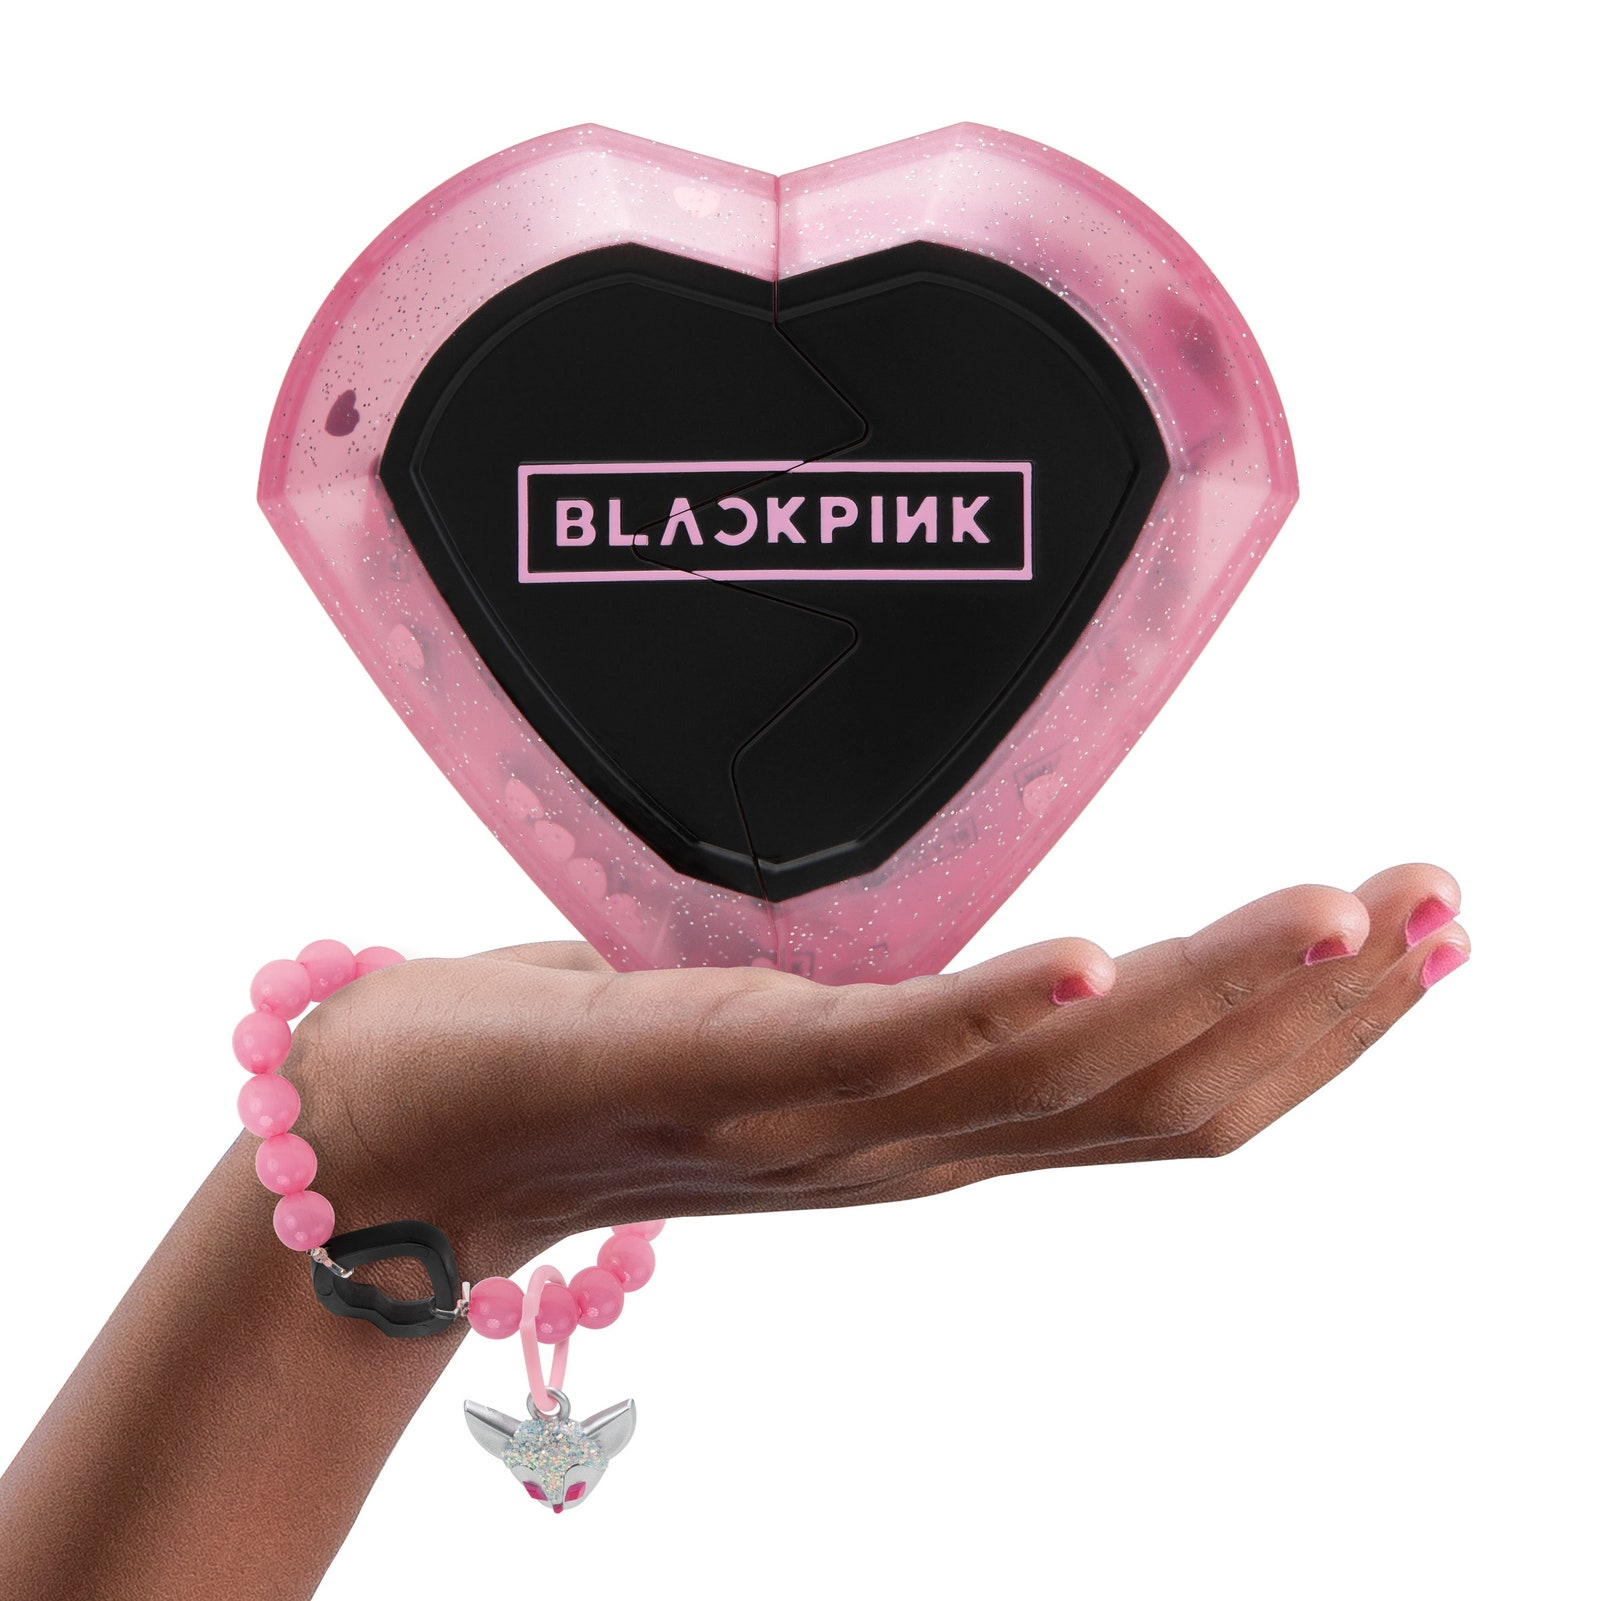 Awesome Jazwares Blackpink Price wallpapers to download for free greenvirals